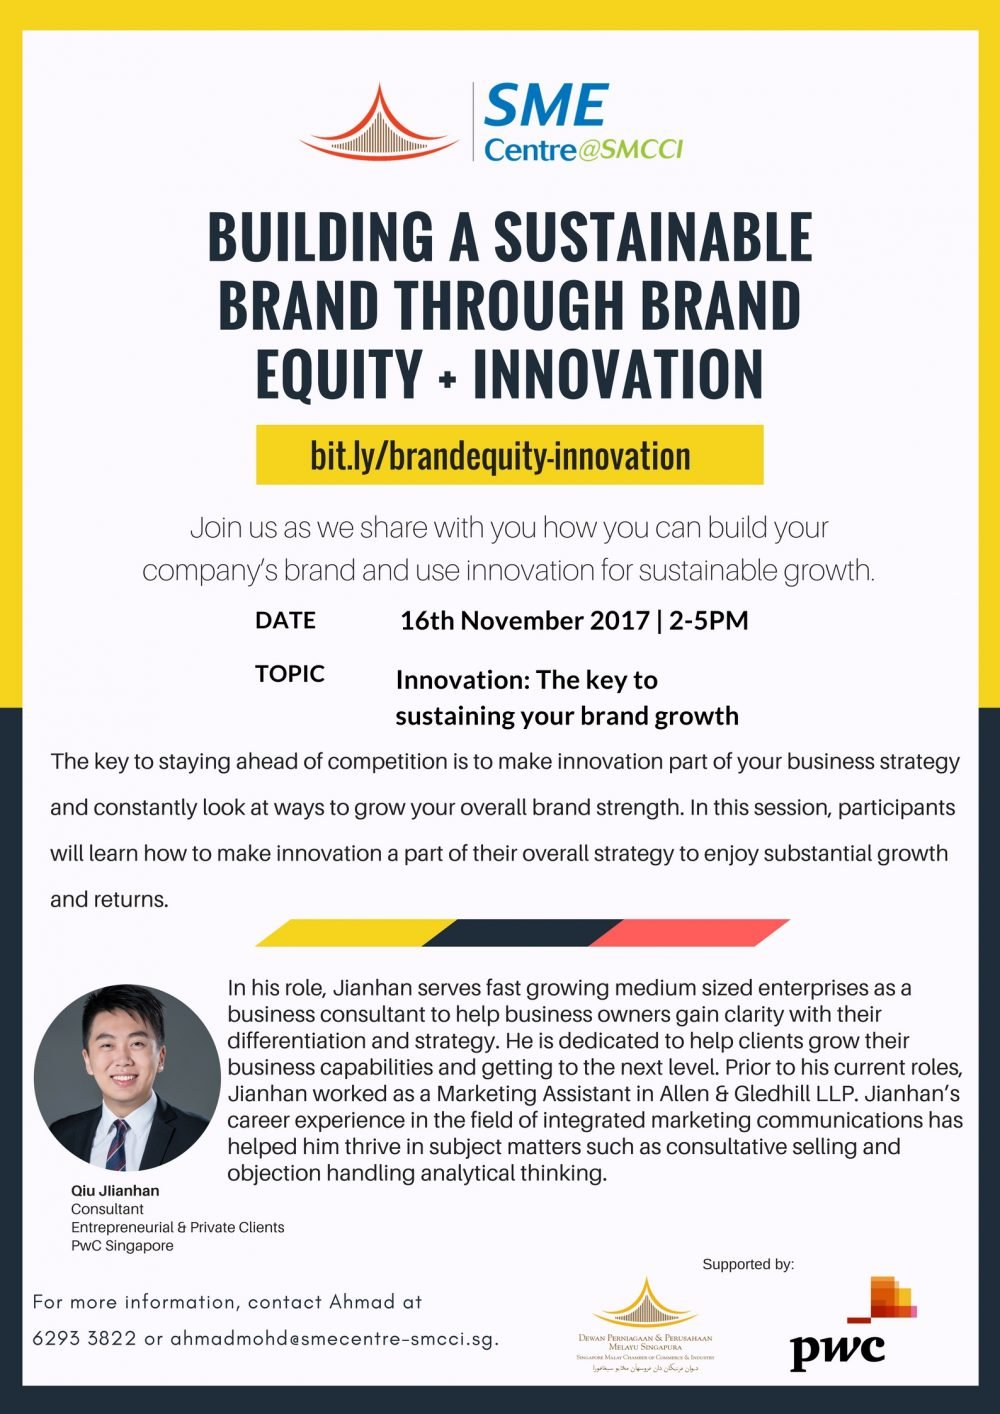 Building a sustainable brand through Brand Equity + Innovation